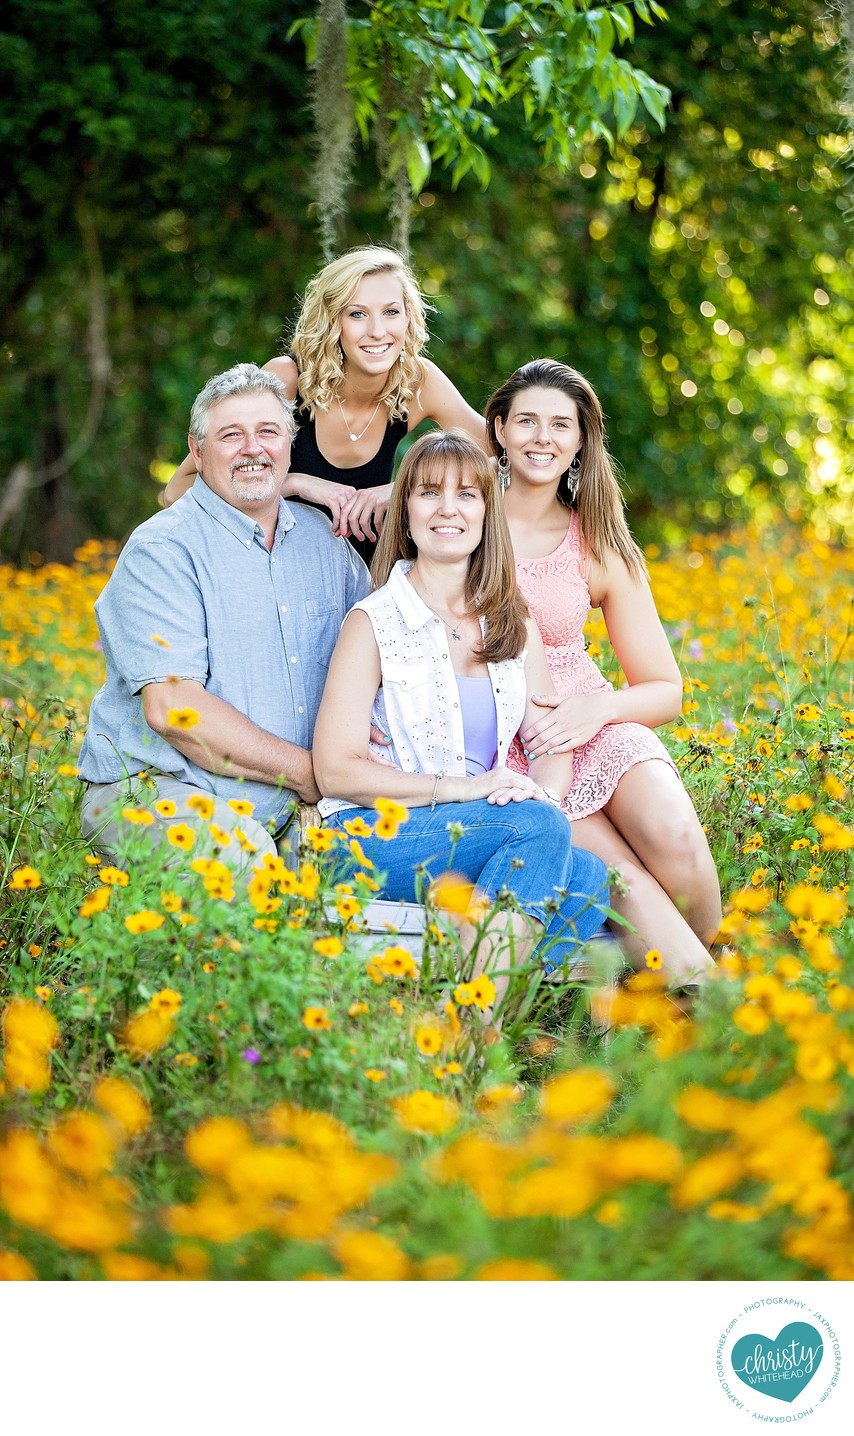 Outdoors Family Photo Shoot Florida